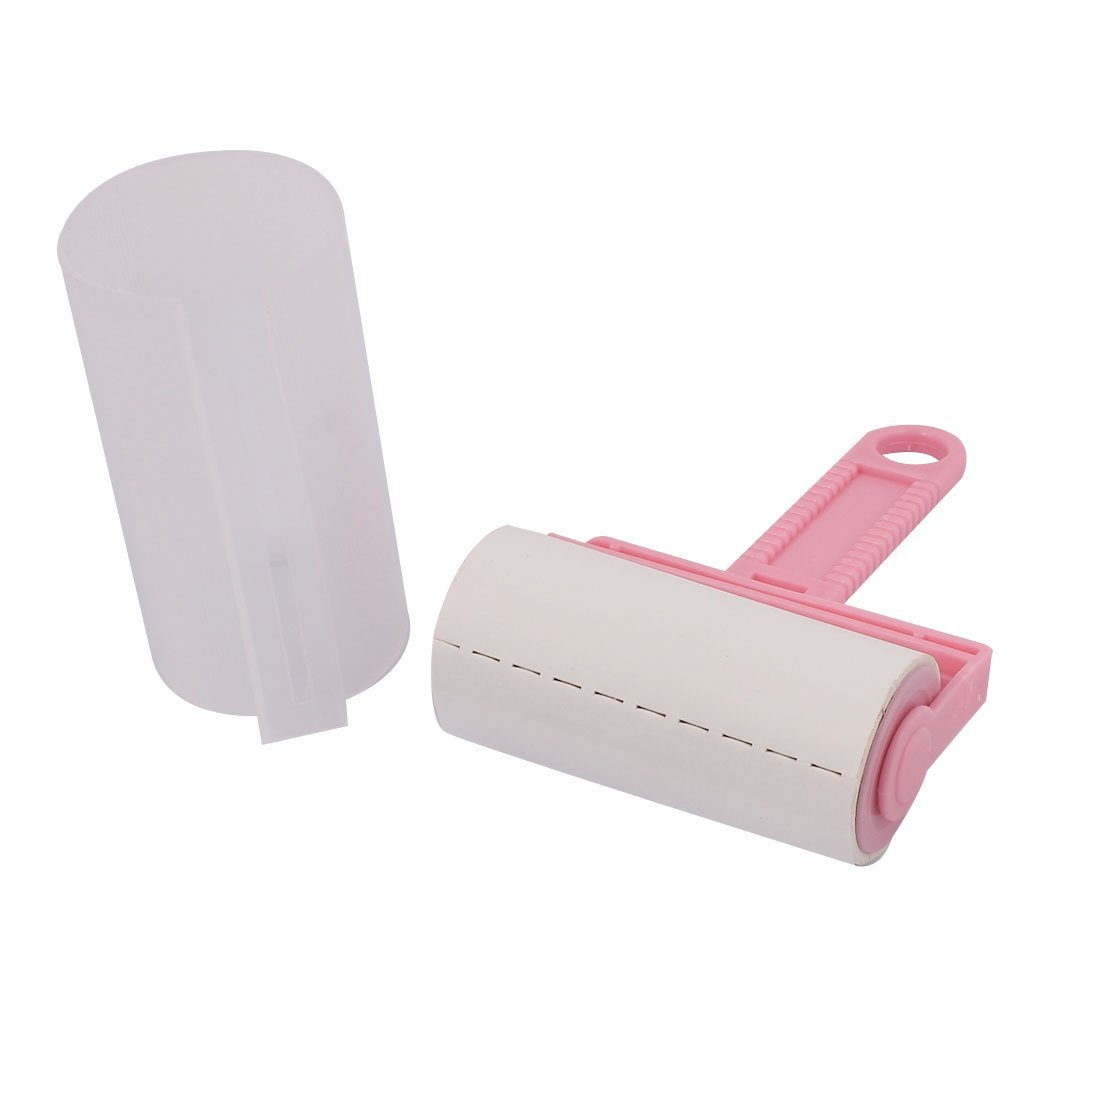 Utoolmart 6 inch Home Carpet Hair Dust Remover Clothes Cleaning Sticky Lint Roller Aluminium alloy Handle 1pcs